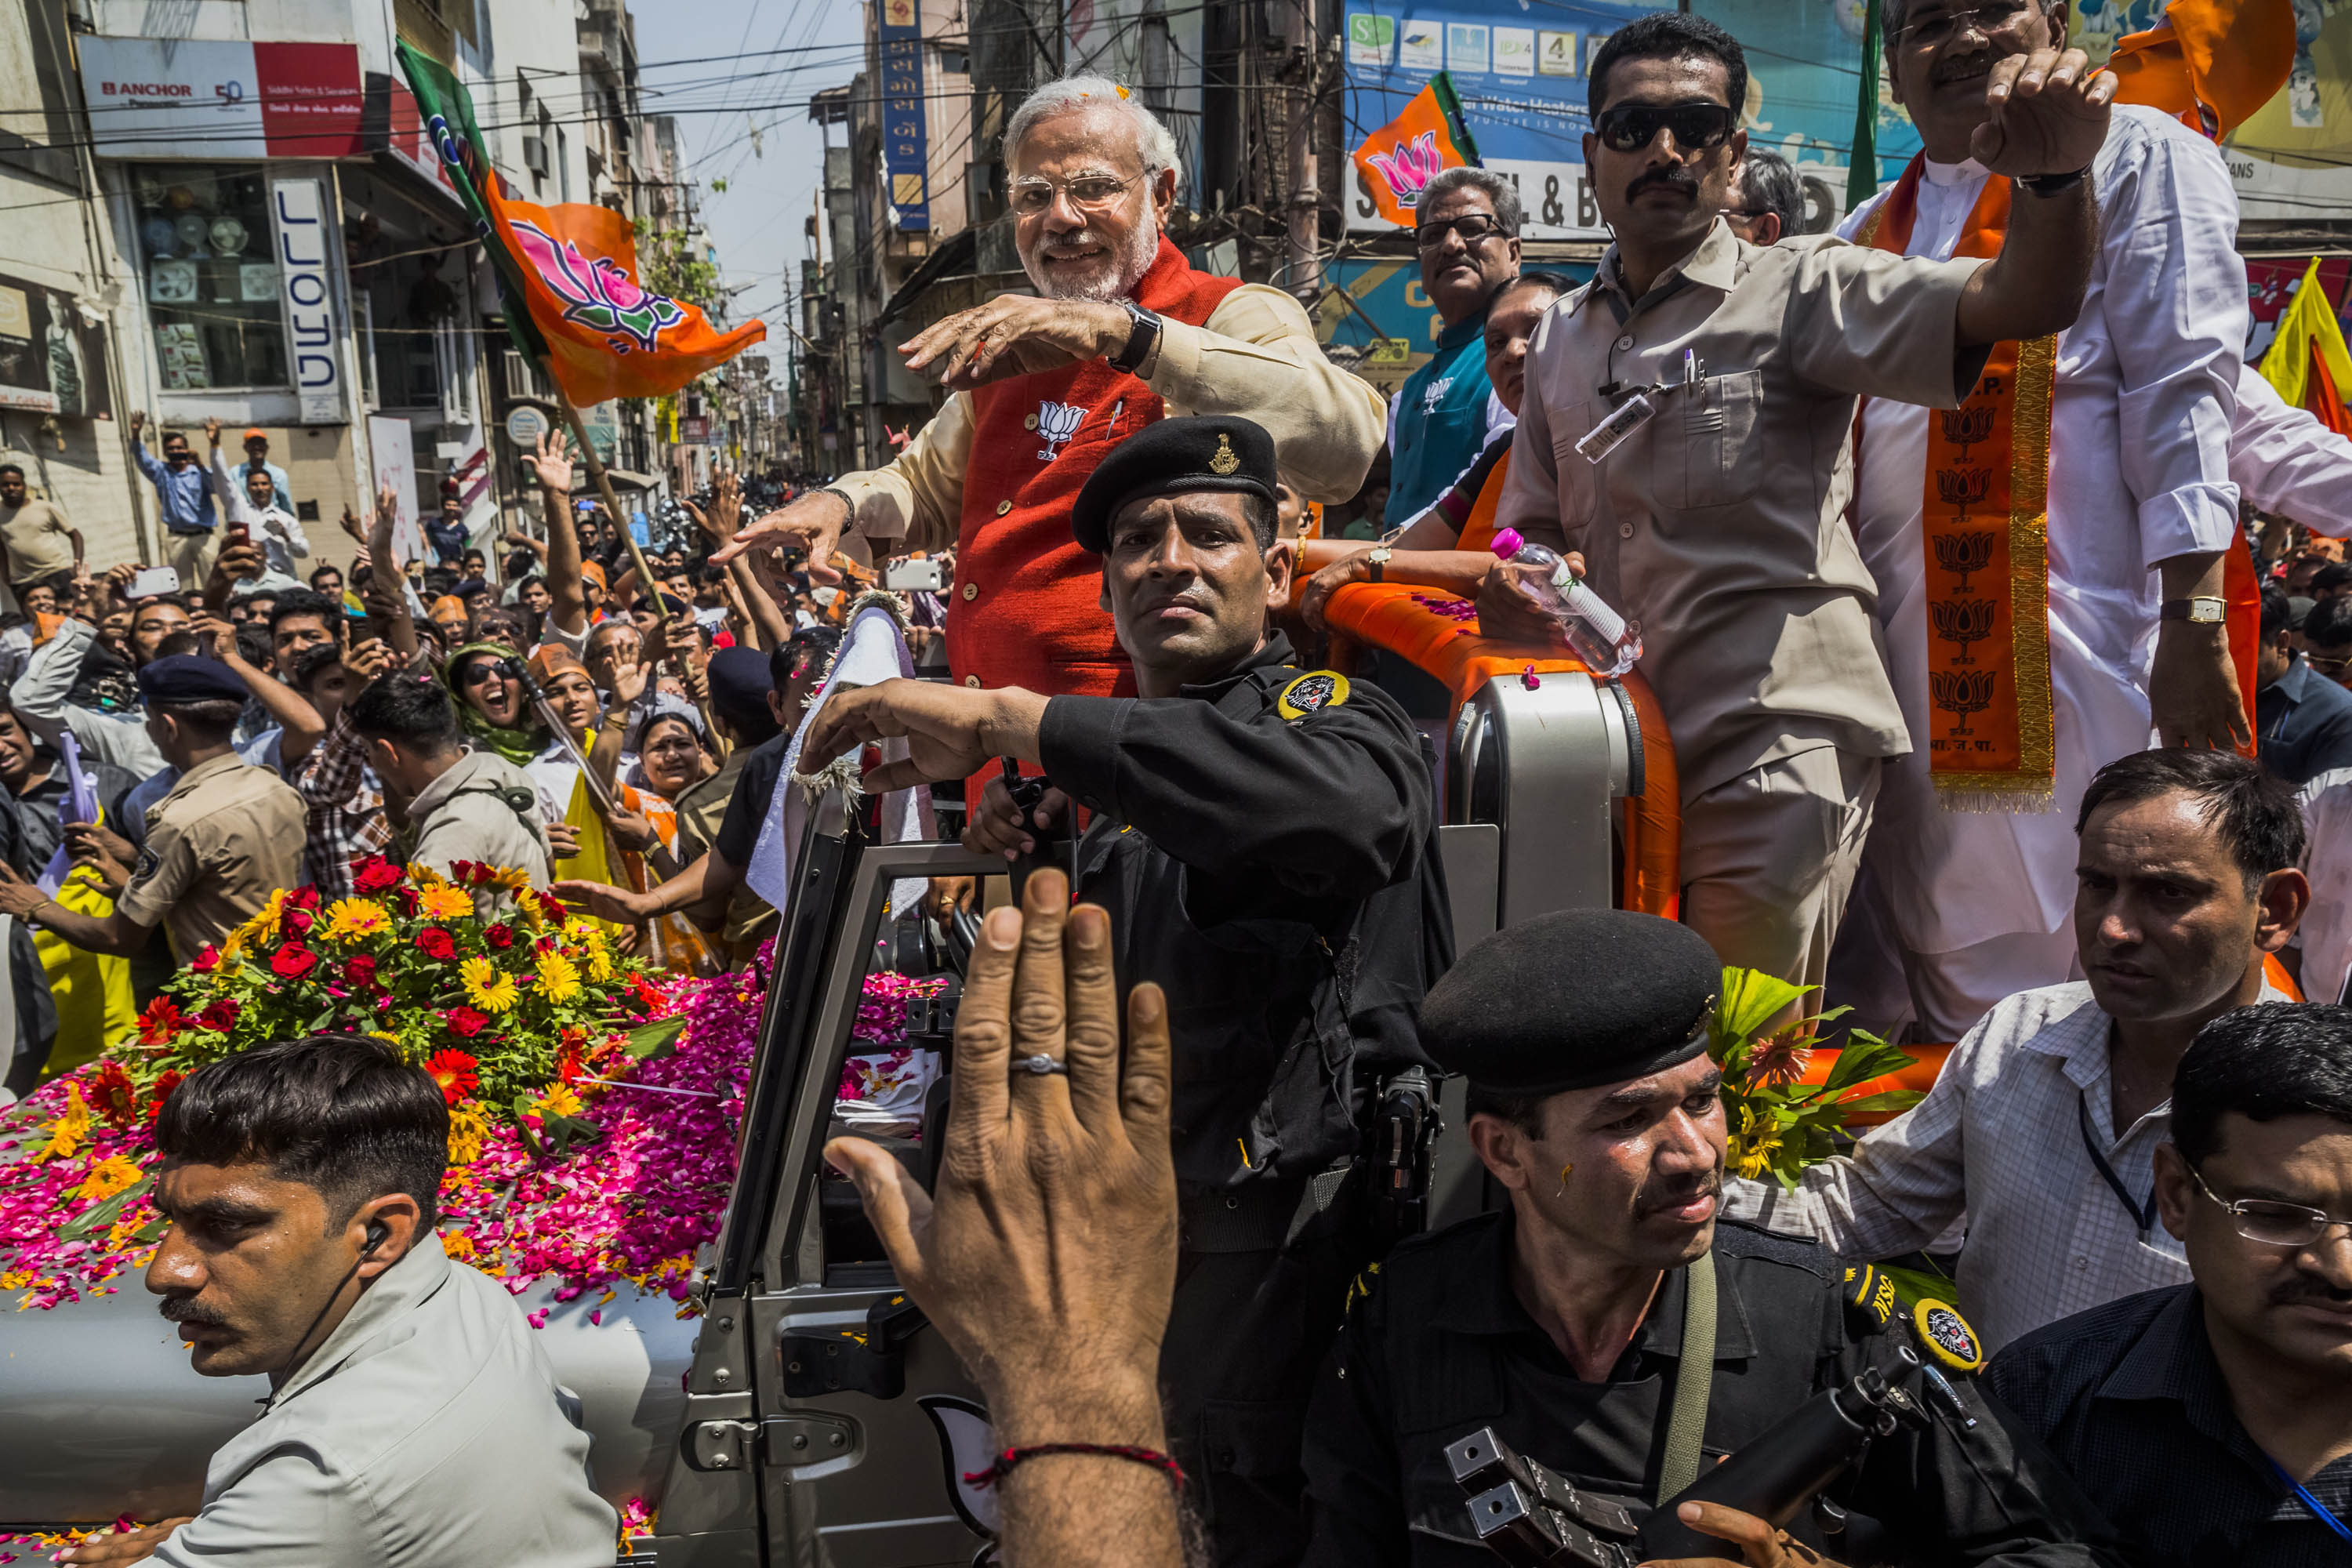 The road to victory, Modi greets supporters at an election rally in Gujarat, where he was chief minister